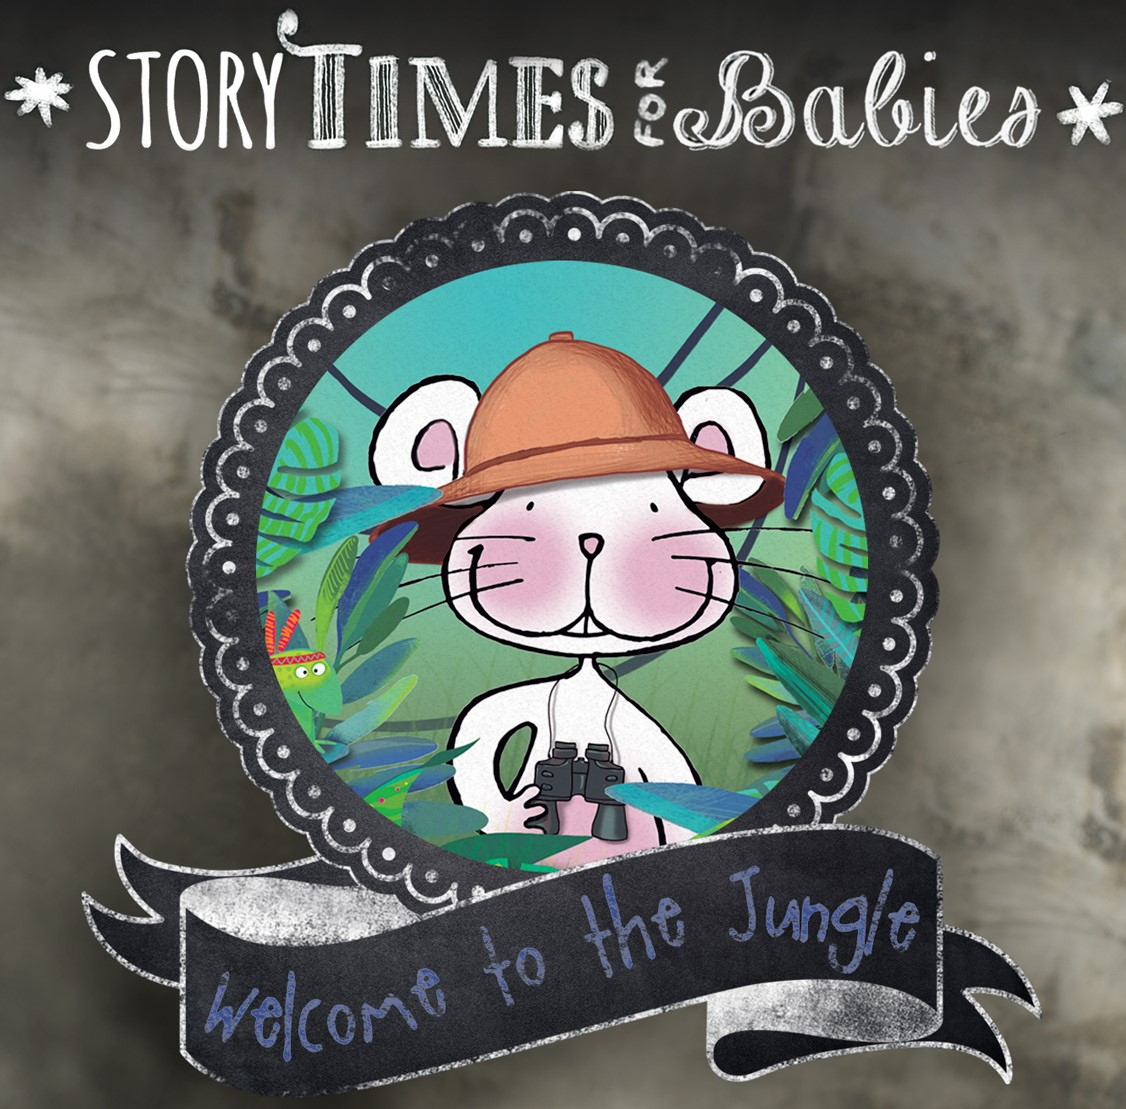 Storytime for babies: Welcome to the Jungle